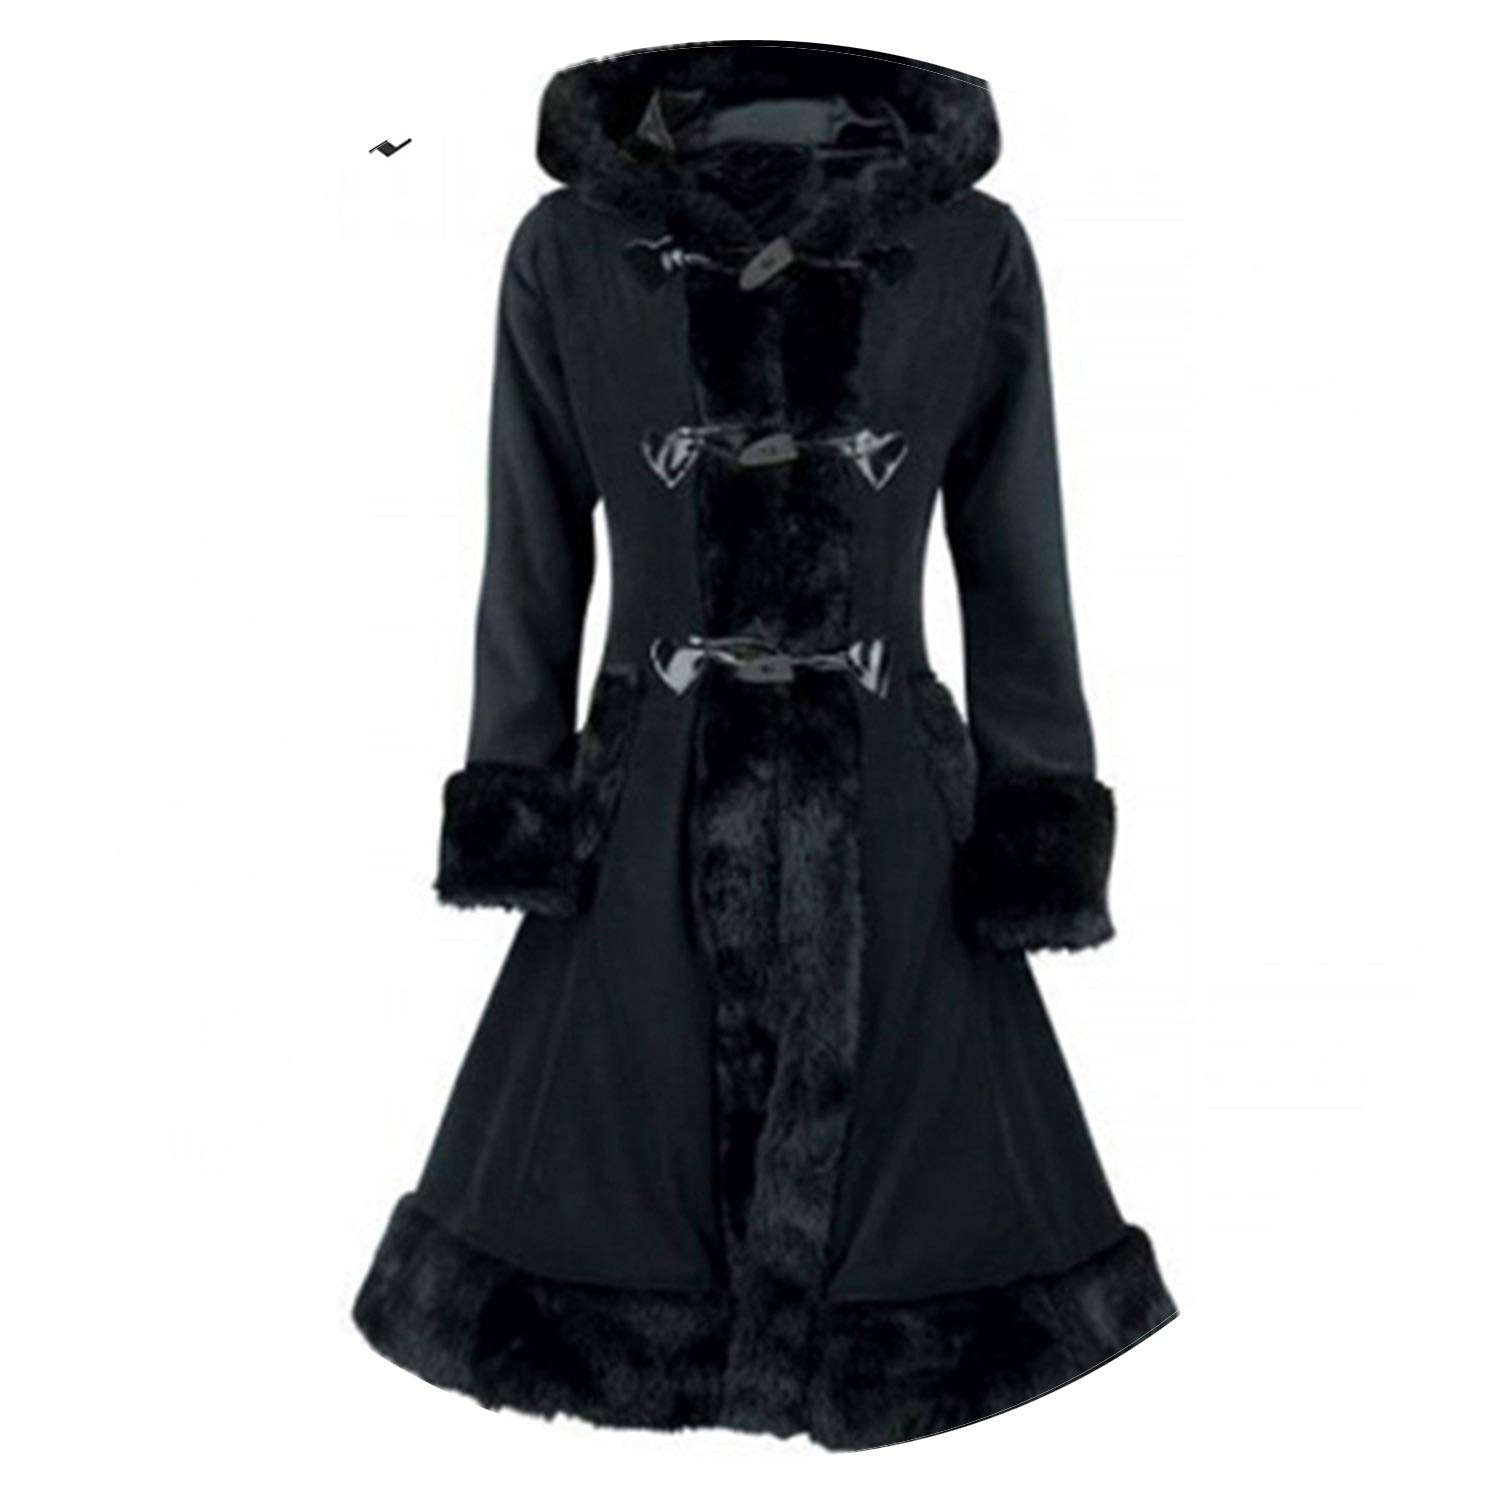 Coat Black Flocking Women Winter Overcoat Hooded Vintage Slim Goth Trench Retro Outwear Tops Gothics Coats Heated-Night